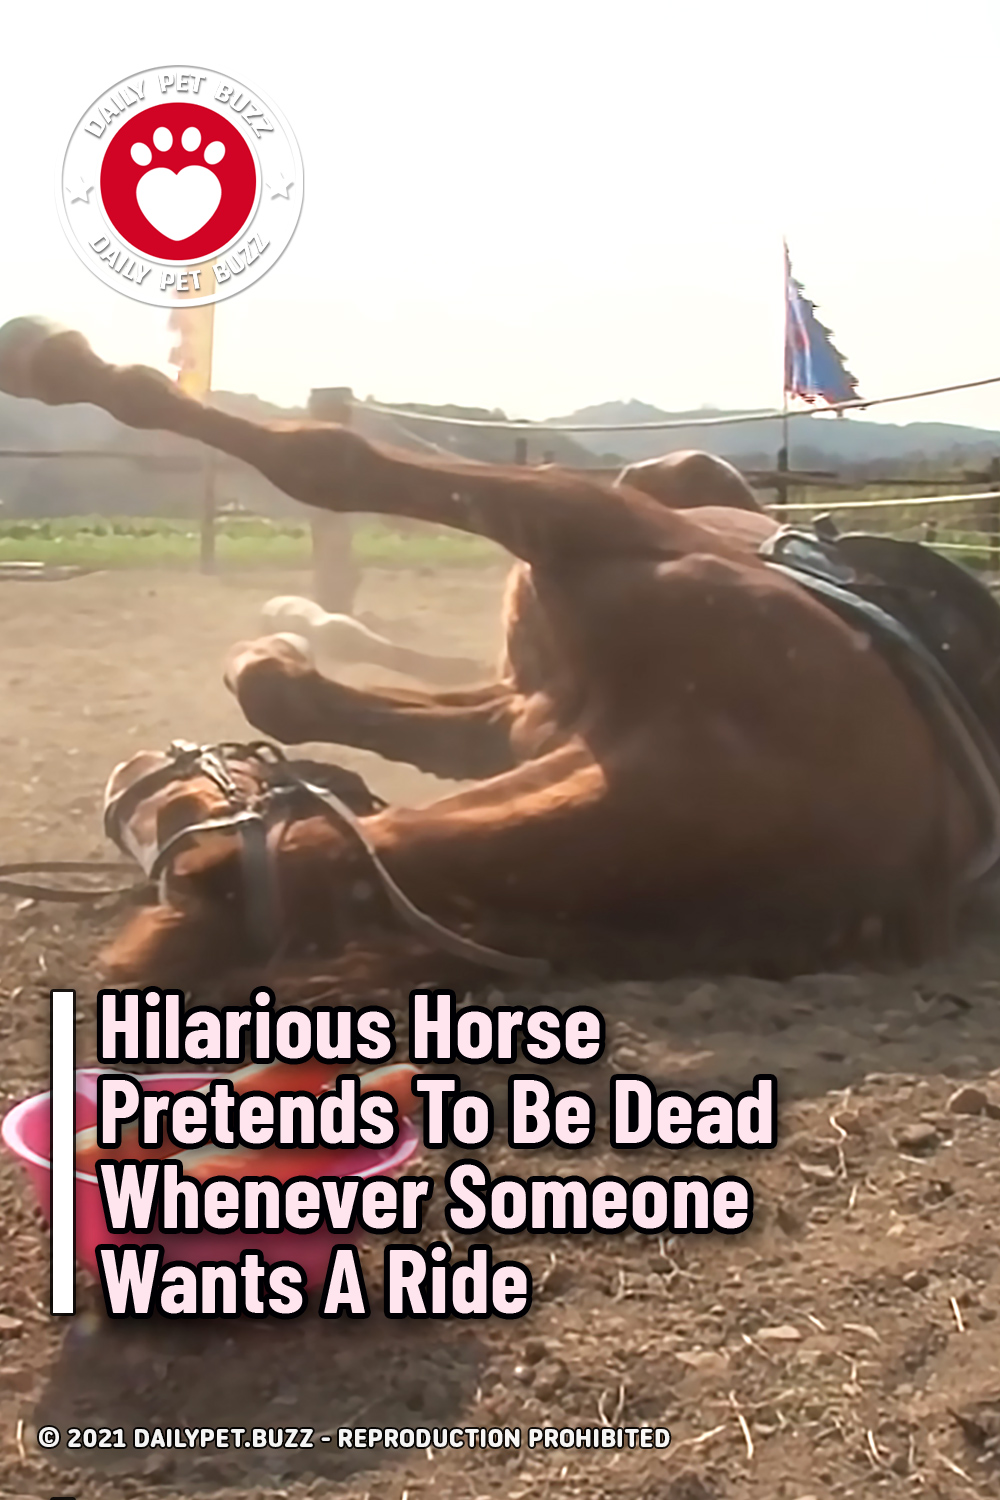 Hilarious Horse Pretends To Be Dead Whenever Someone Wants A Ride